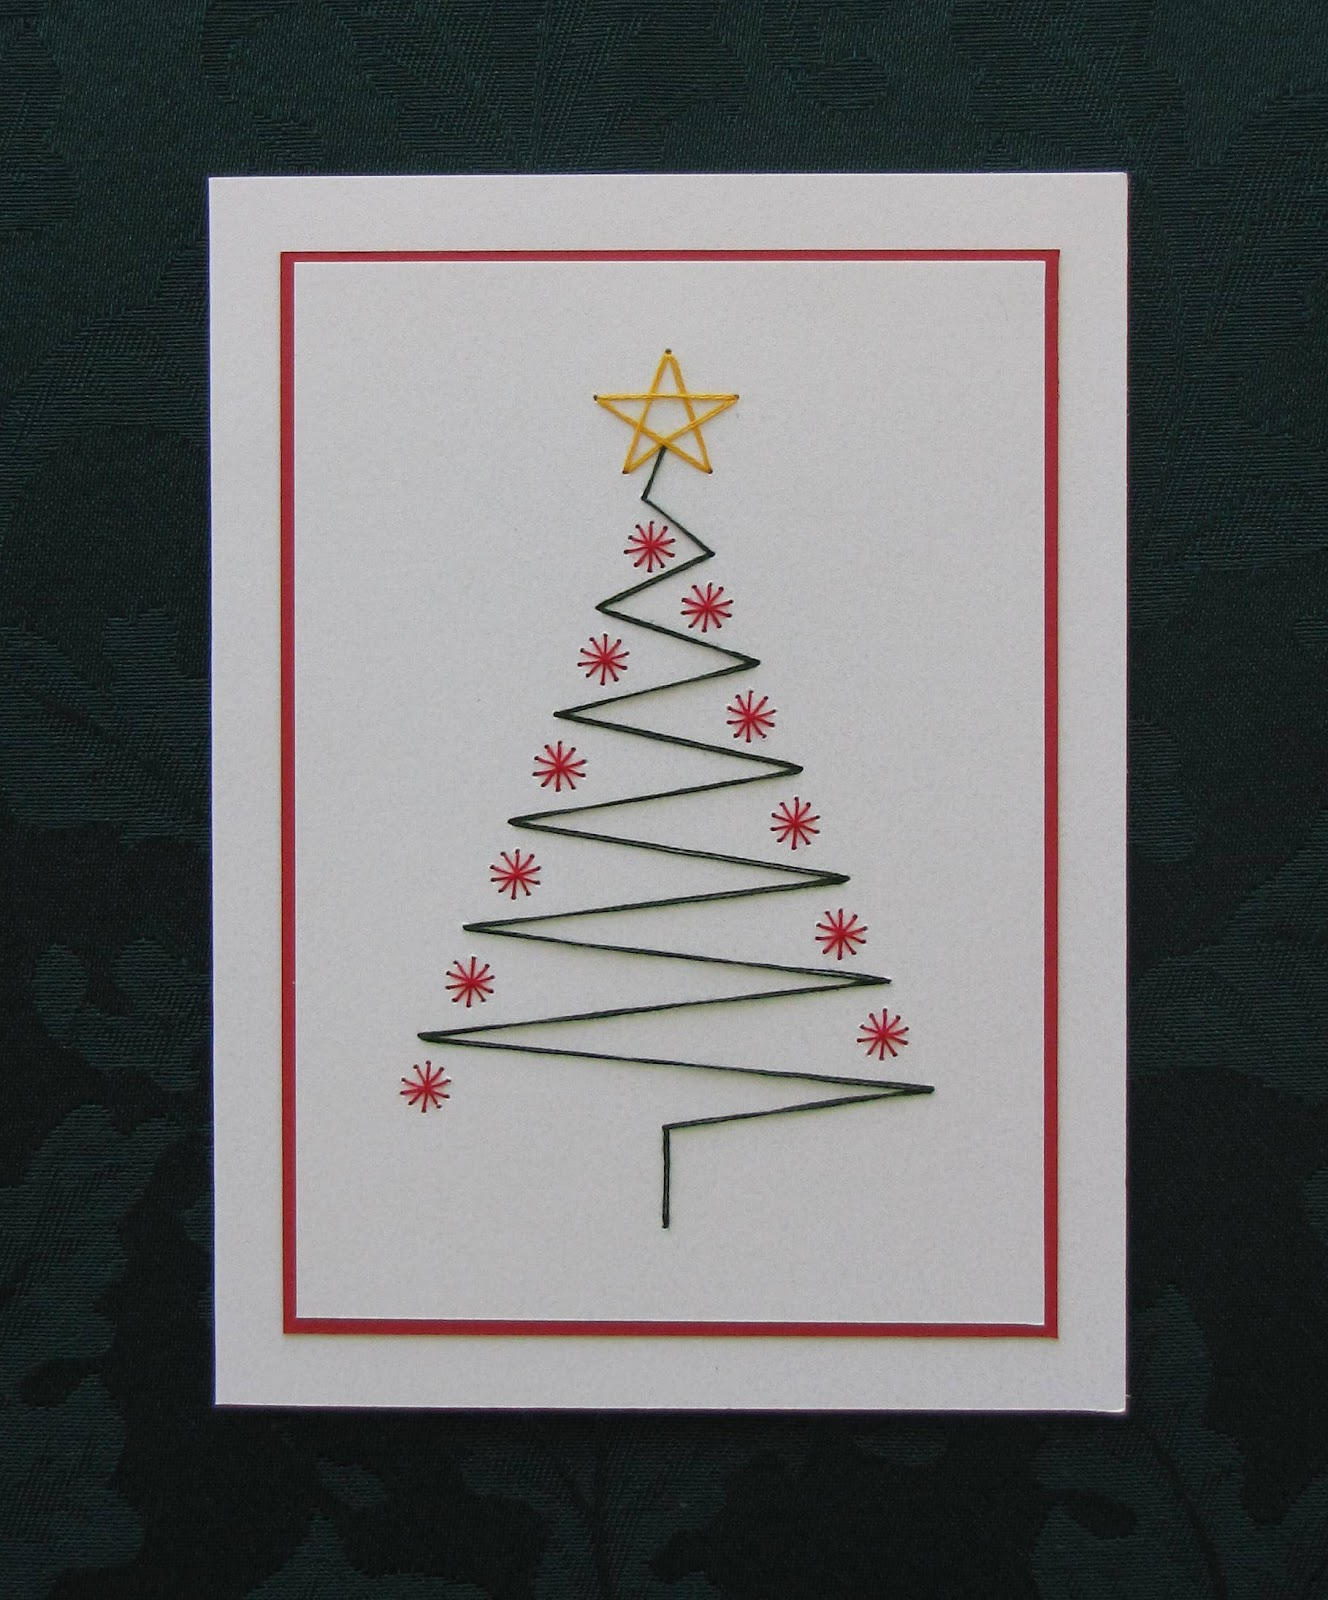 Handmade by Kath: Less is More Christmas Tree